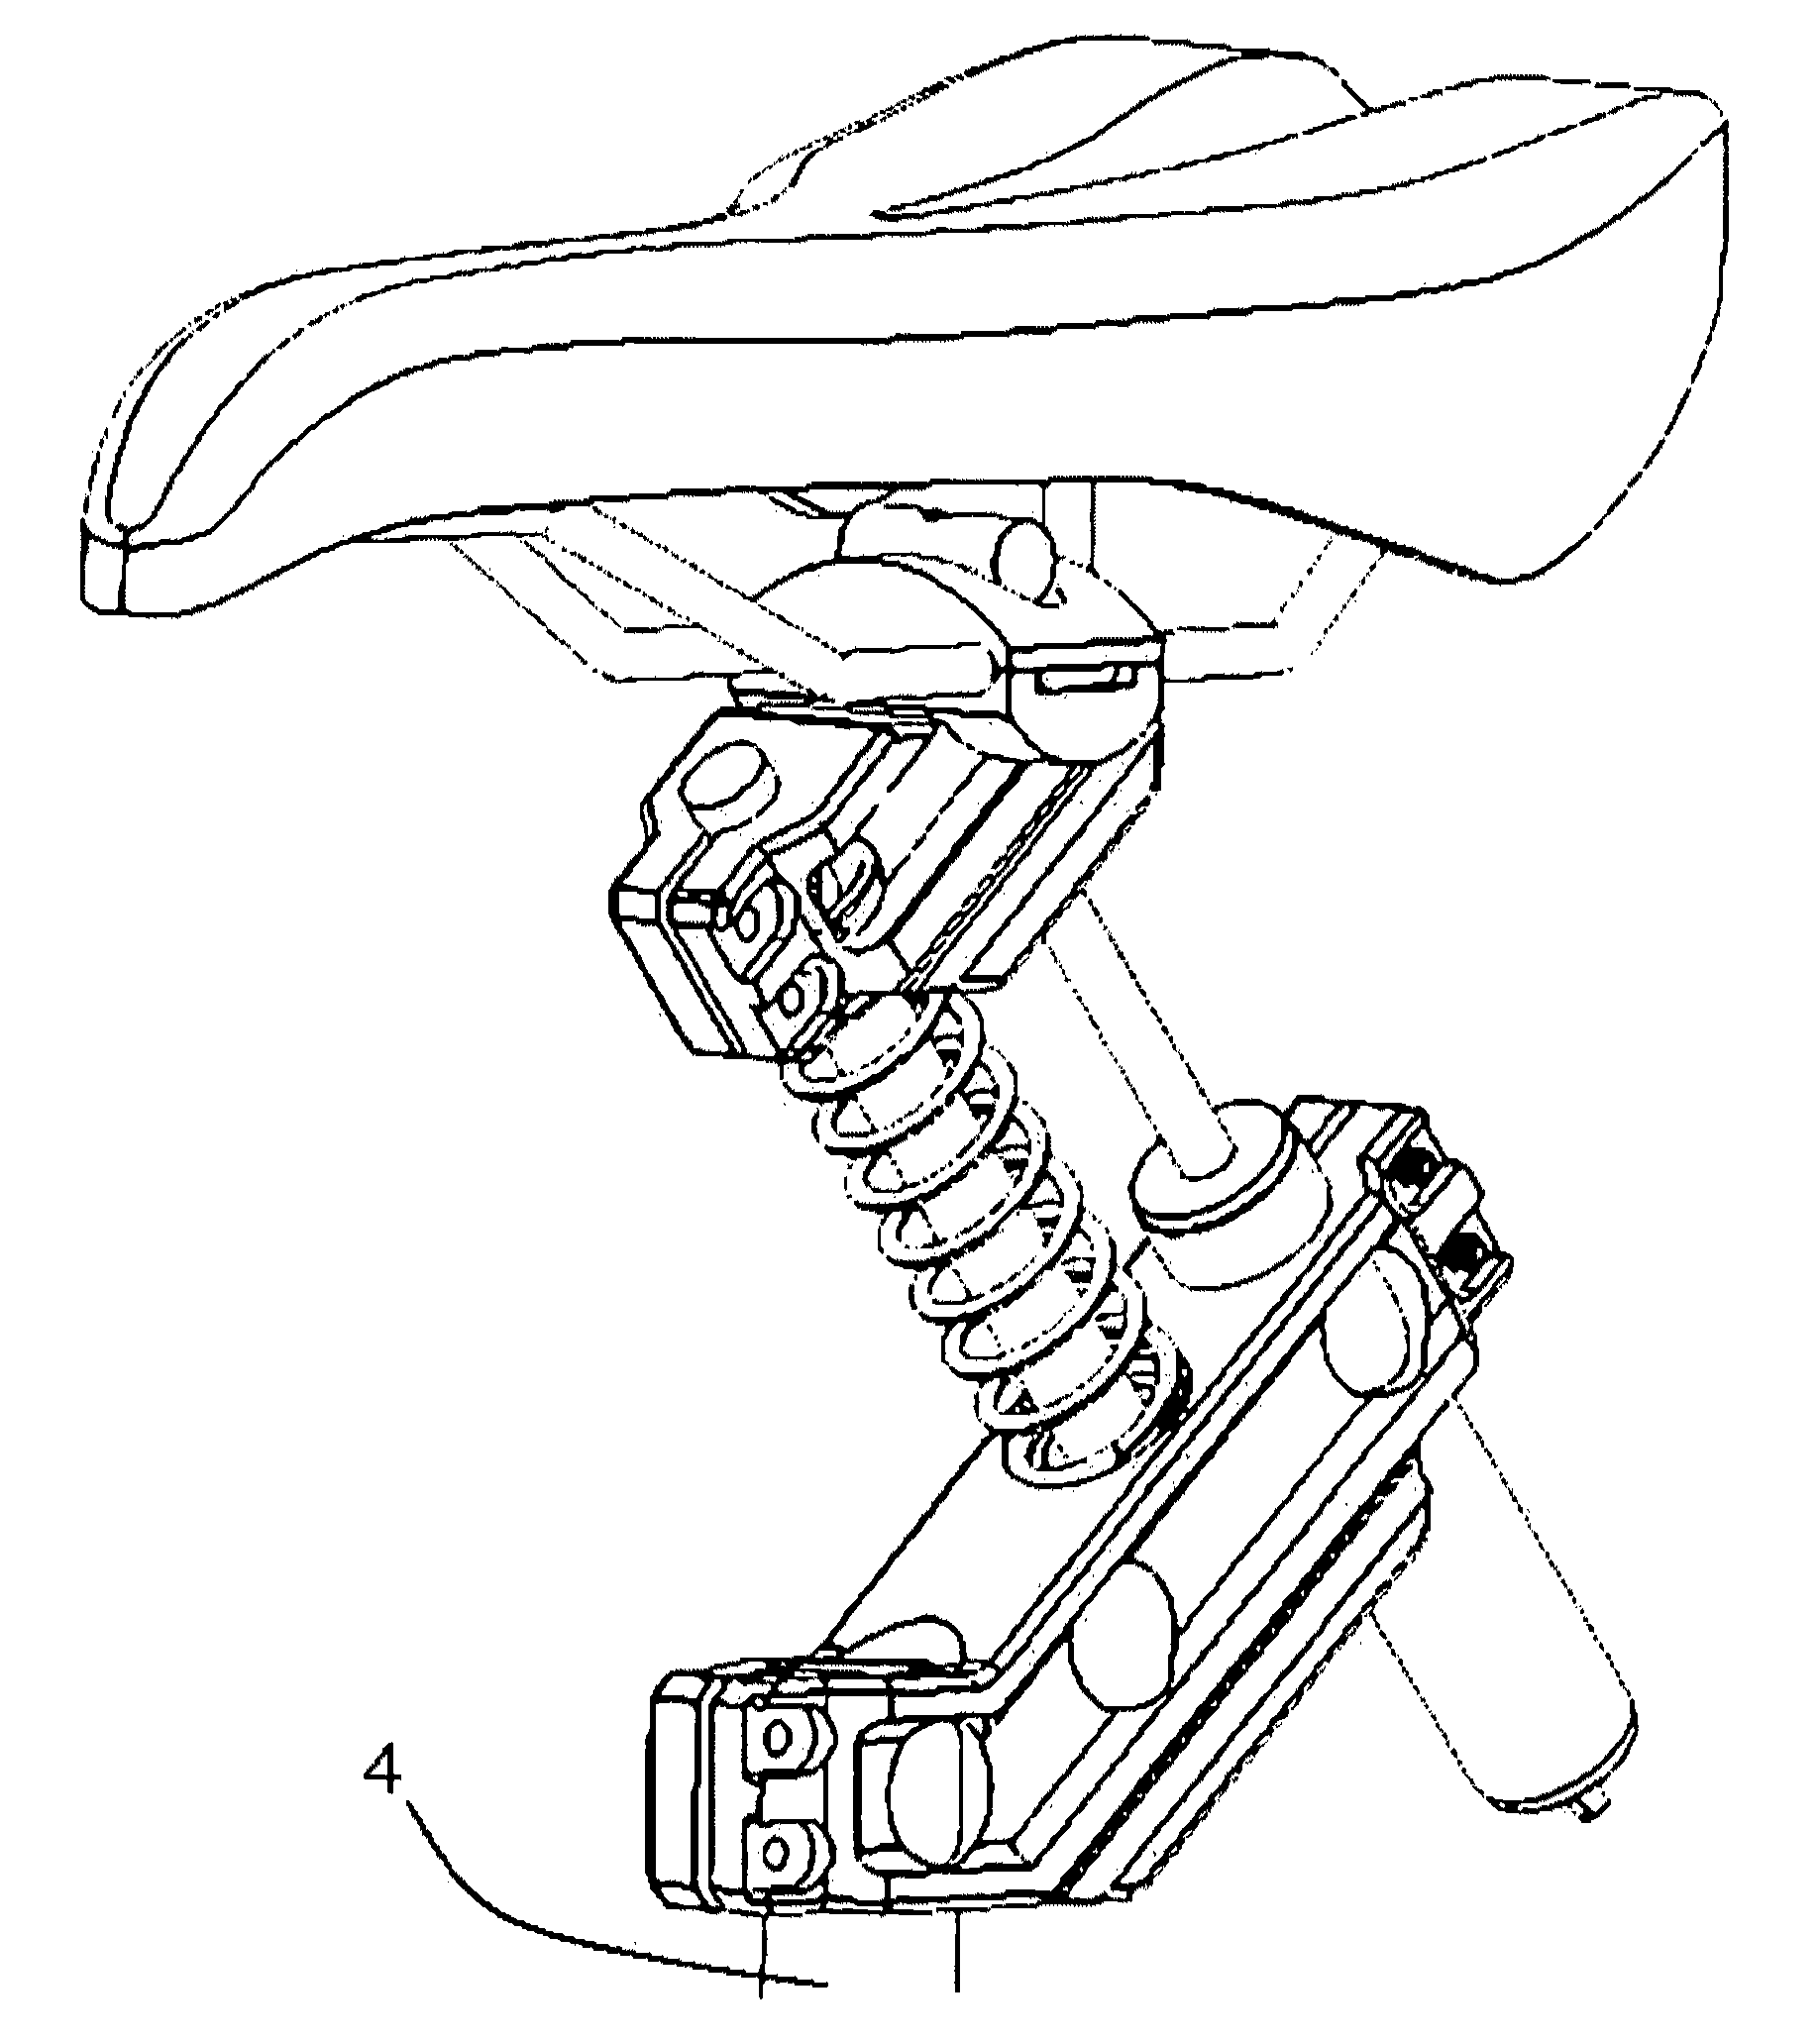 patent us variable height and lateral position suspension patent drawing